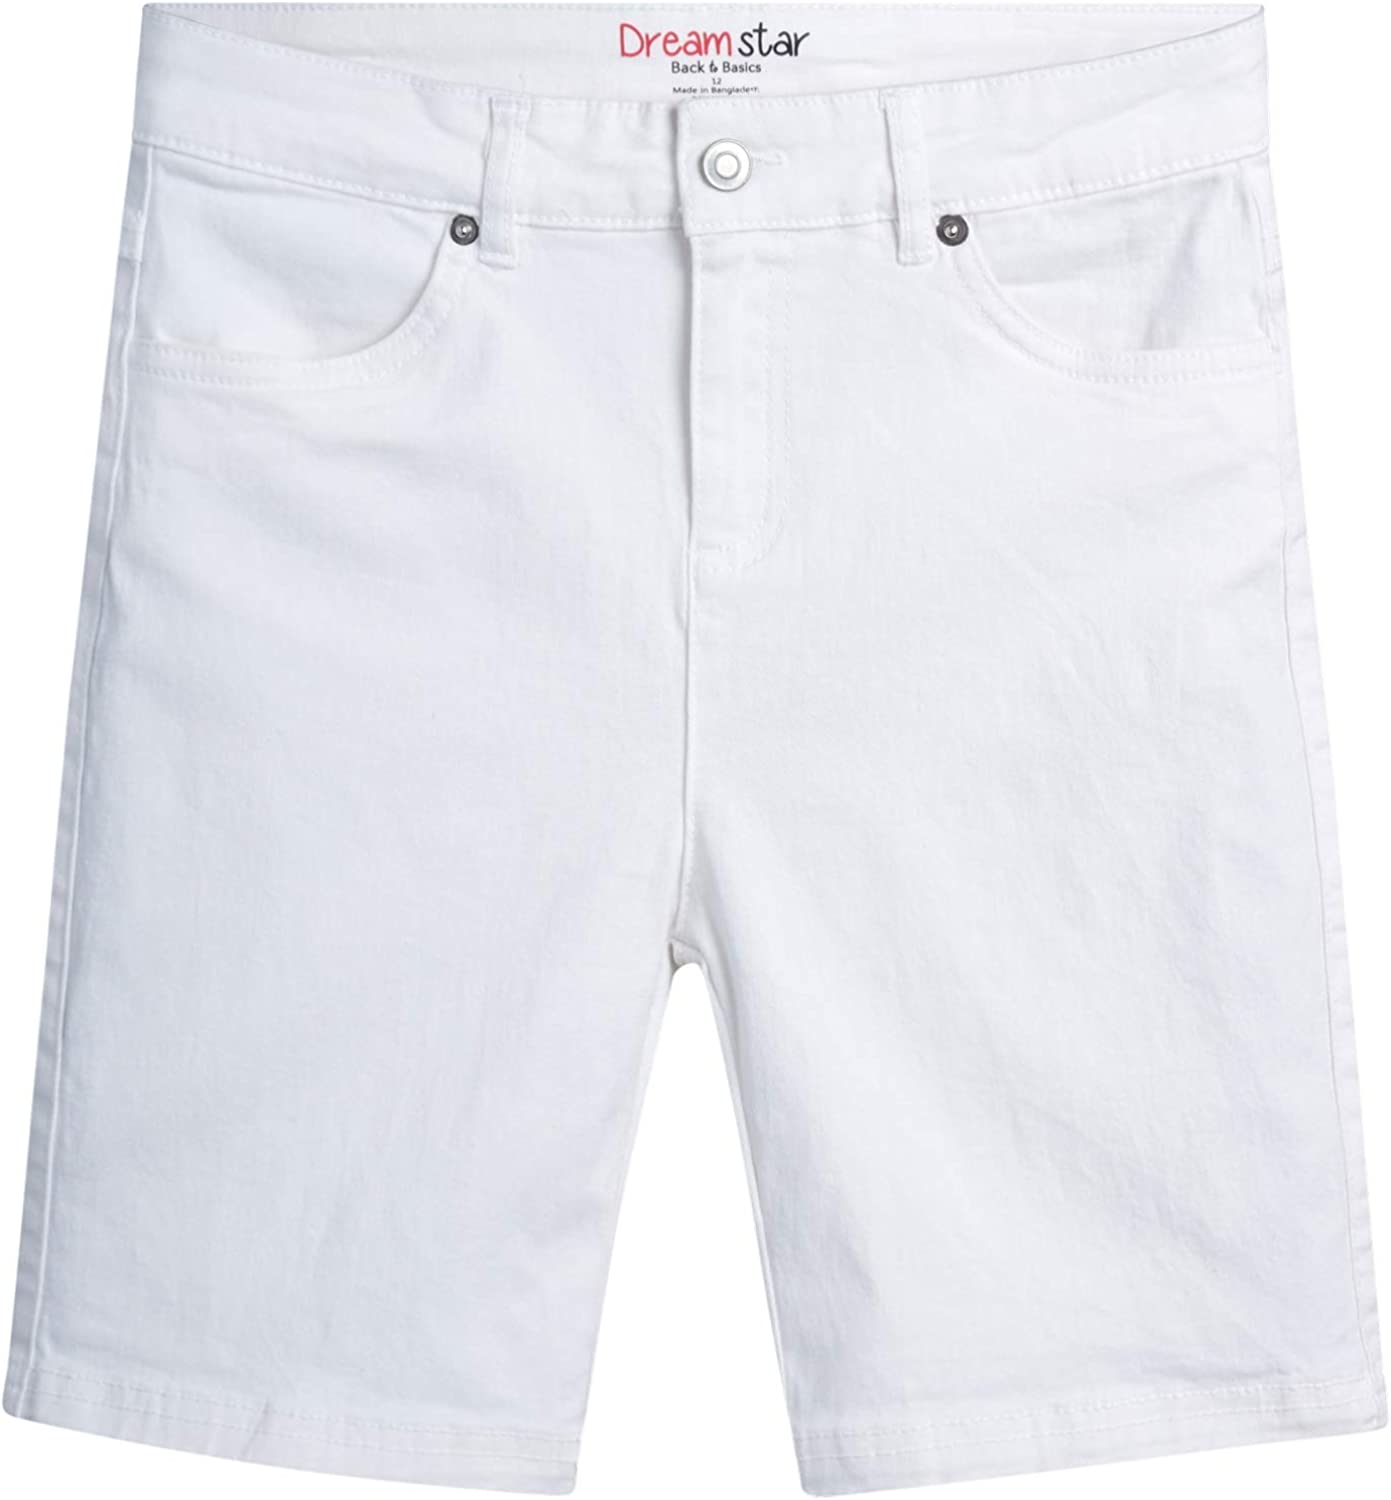 Dreamstar Girls' Shorts – Sales for sale Comfort Be Overseas parallel import regular item Twill Fit Stretch